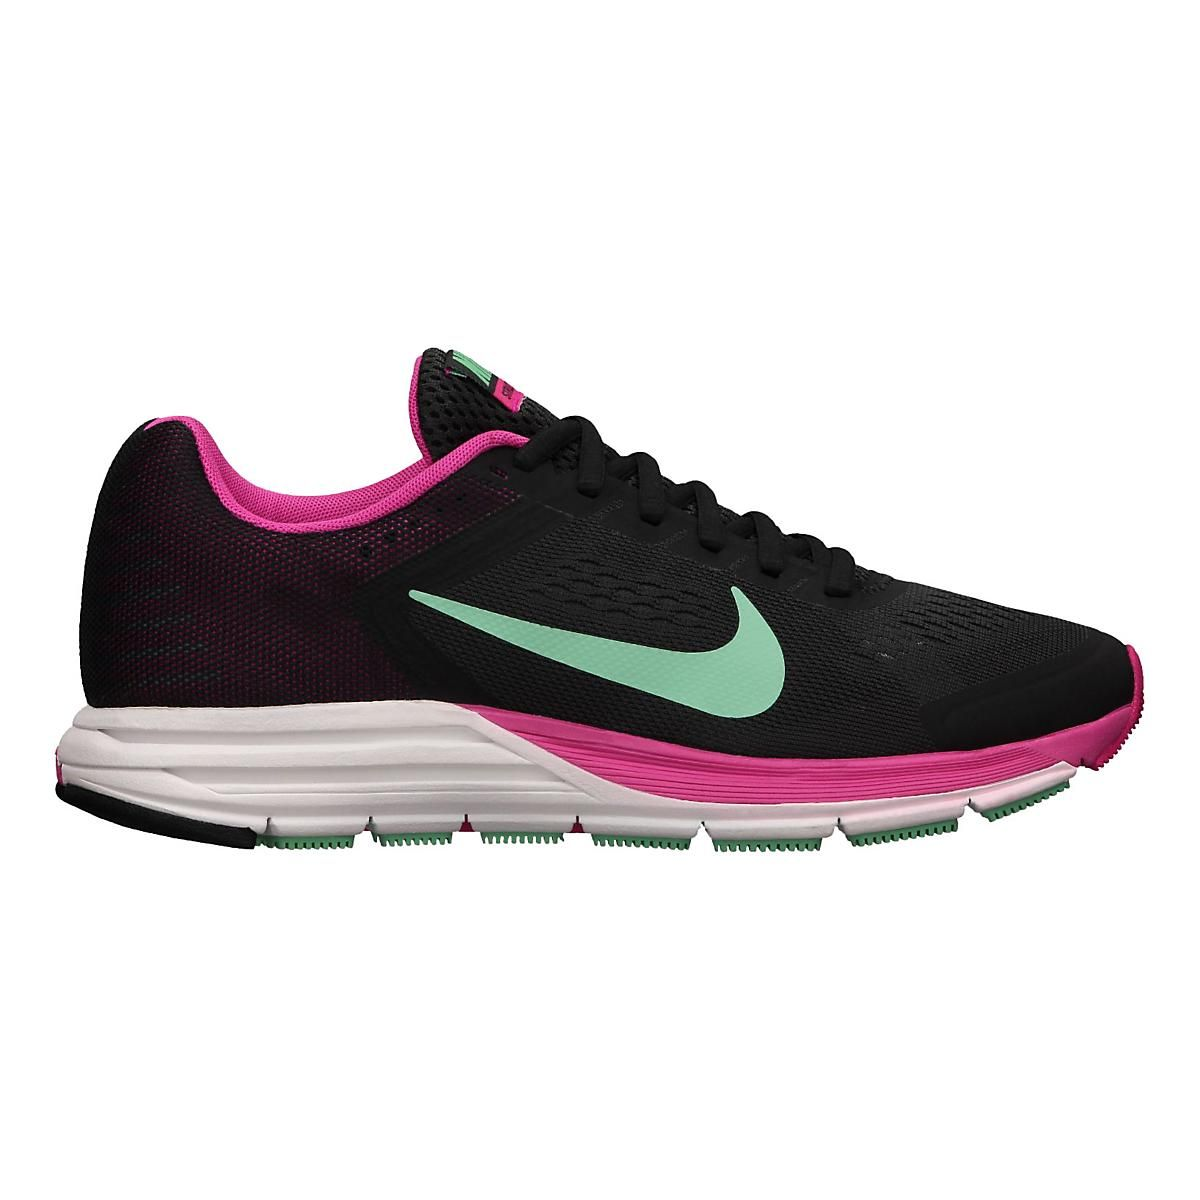 purchase cheap cbea4 62b33 Step-up your strides, running stronger and more confidently than ever  before in the newly updated Womens Nike Air Zoom Structure+ 17